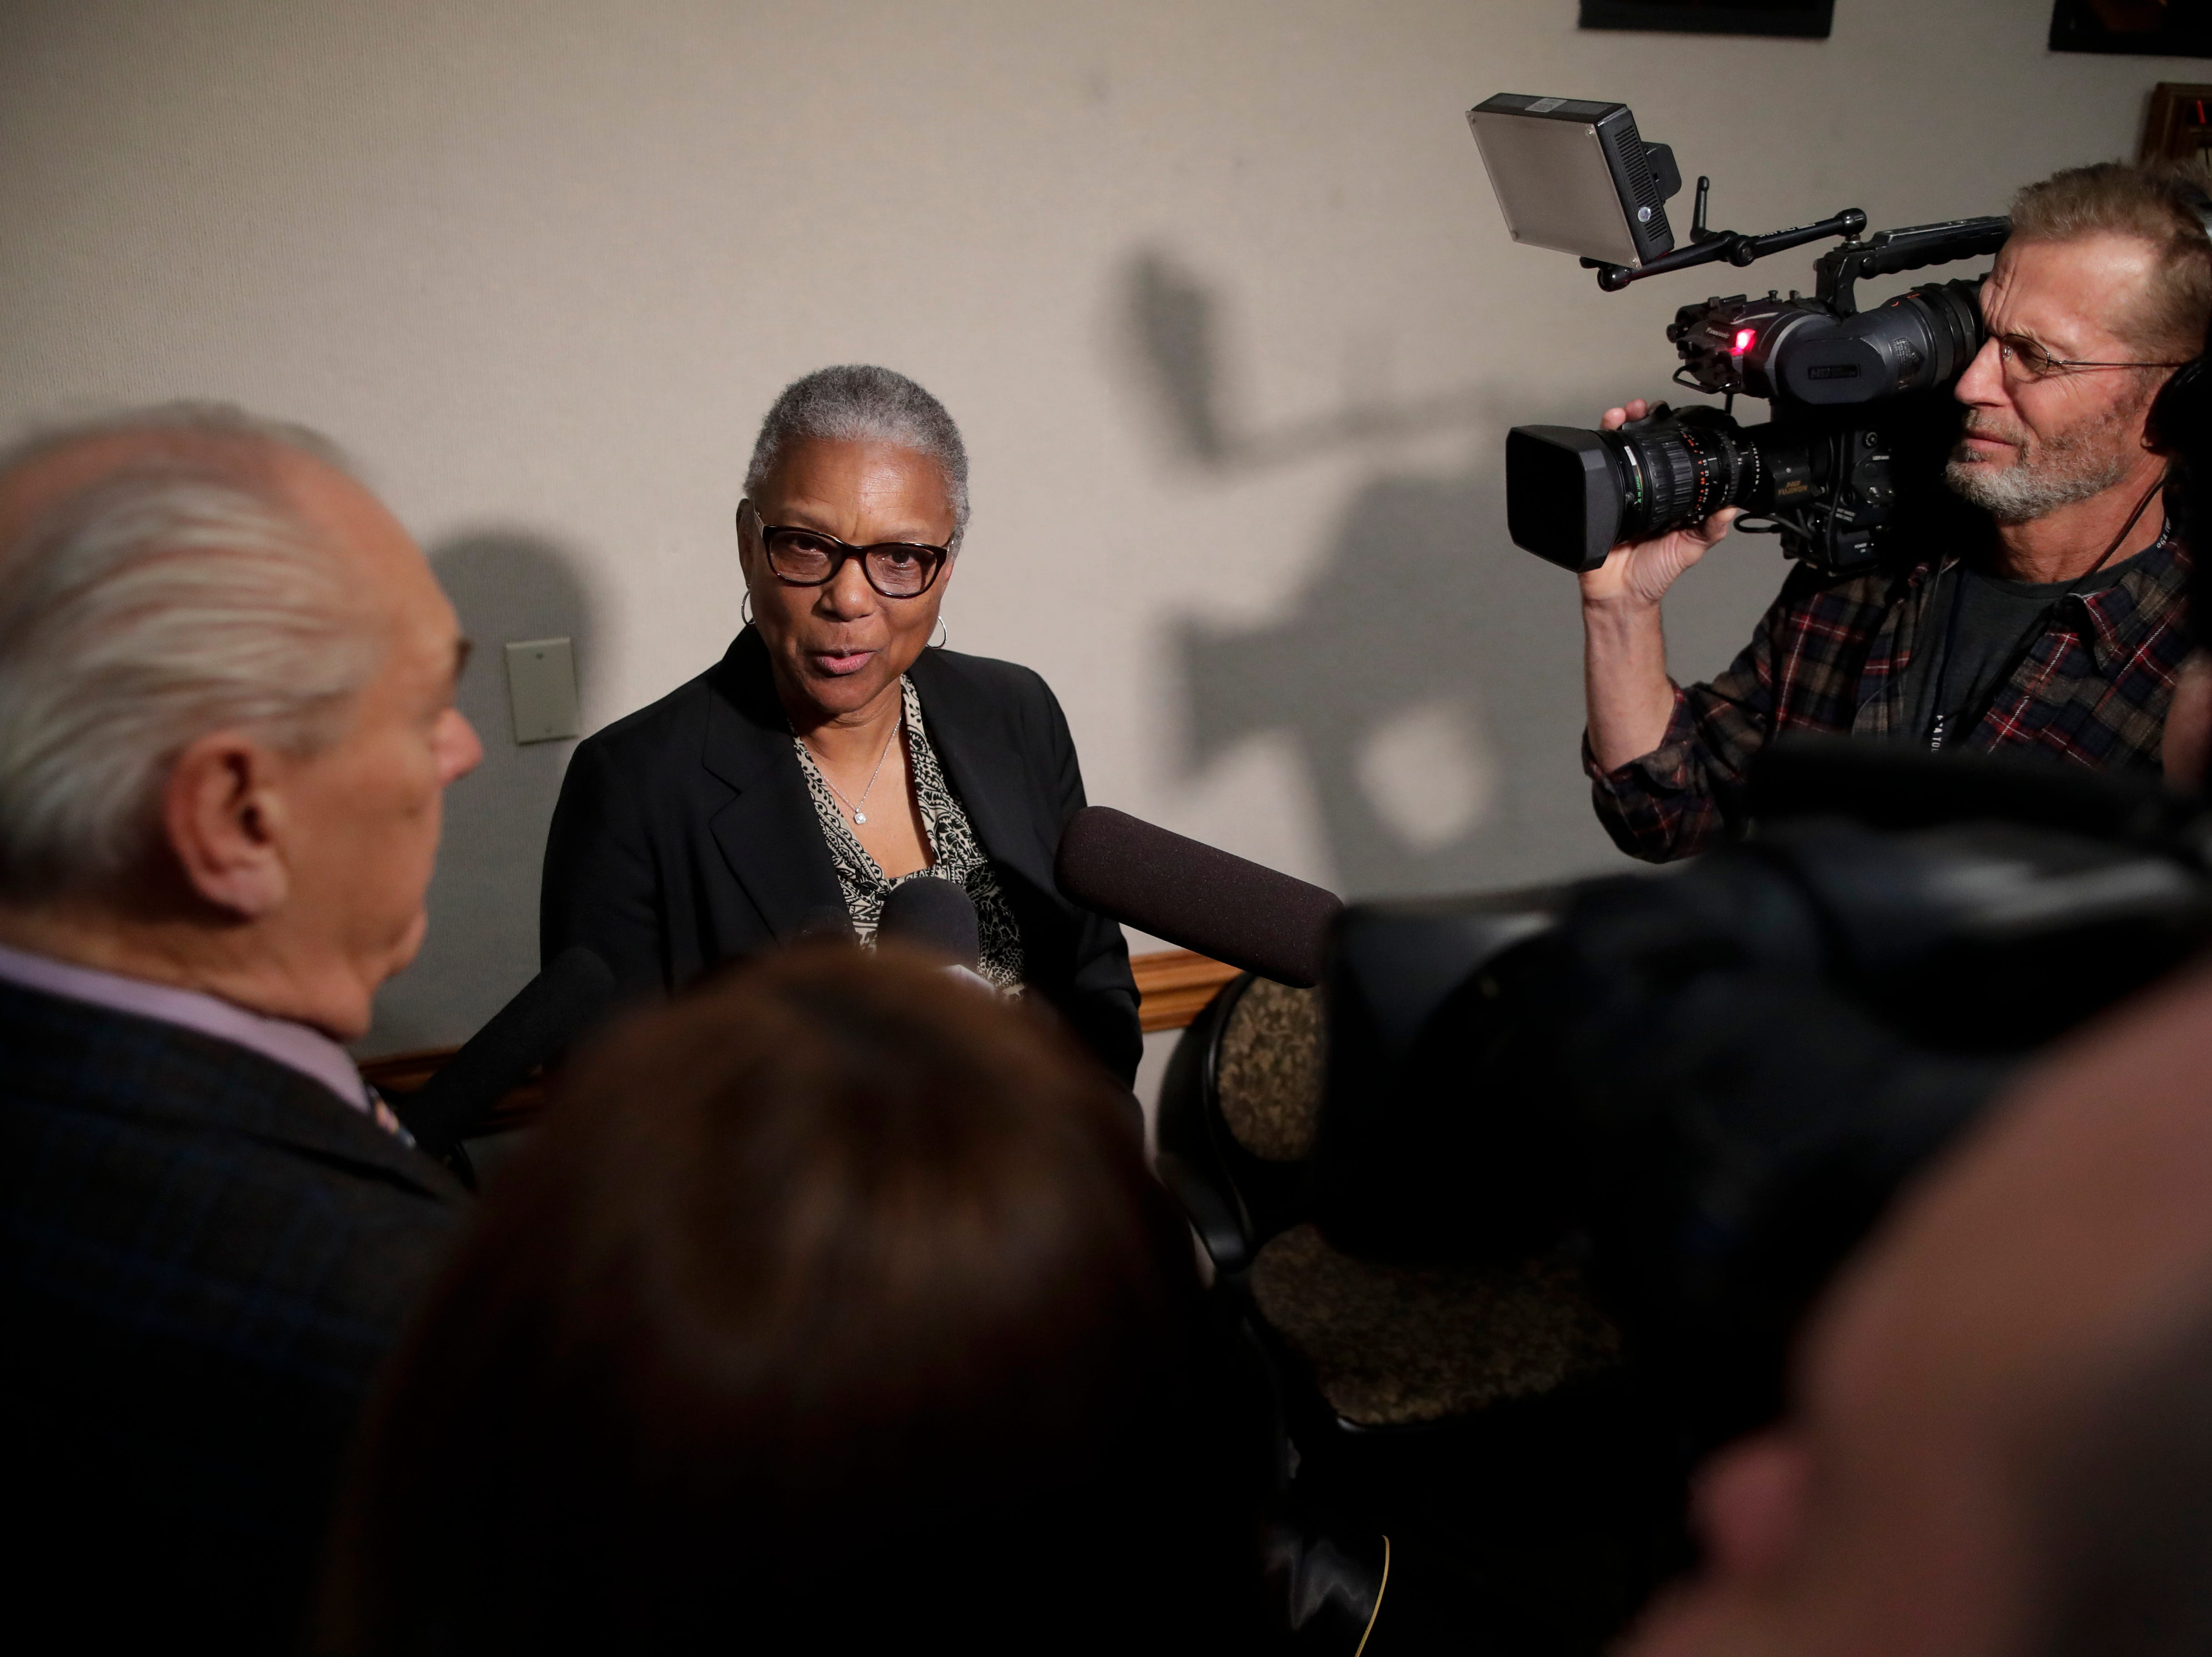 Carol (Greenlee) Crawley, daughter of Charles Greenlee, one of the men in the Groveland Four, talks about her reaction to the pardon that was given to her father by Gov. Ron DeSantis and his cabinet during a clemency board hearing Friday, Jan. 11, 2019.